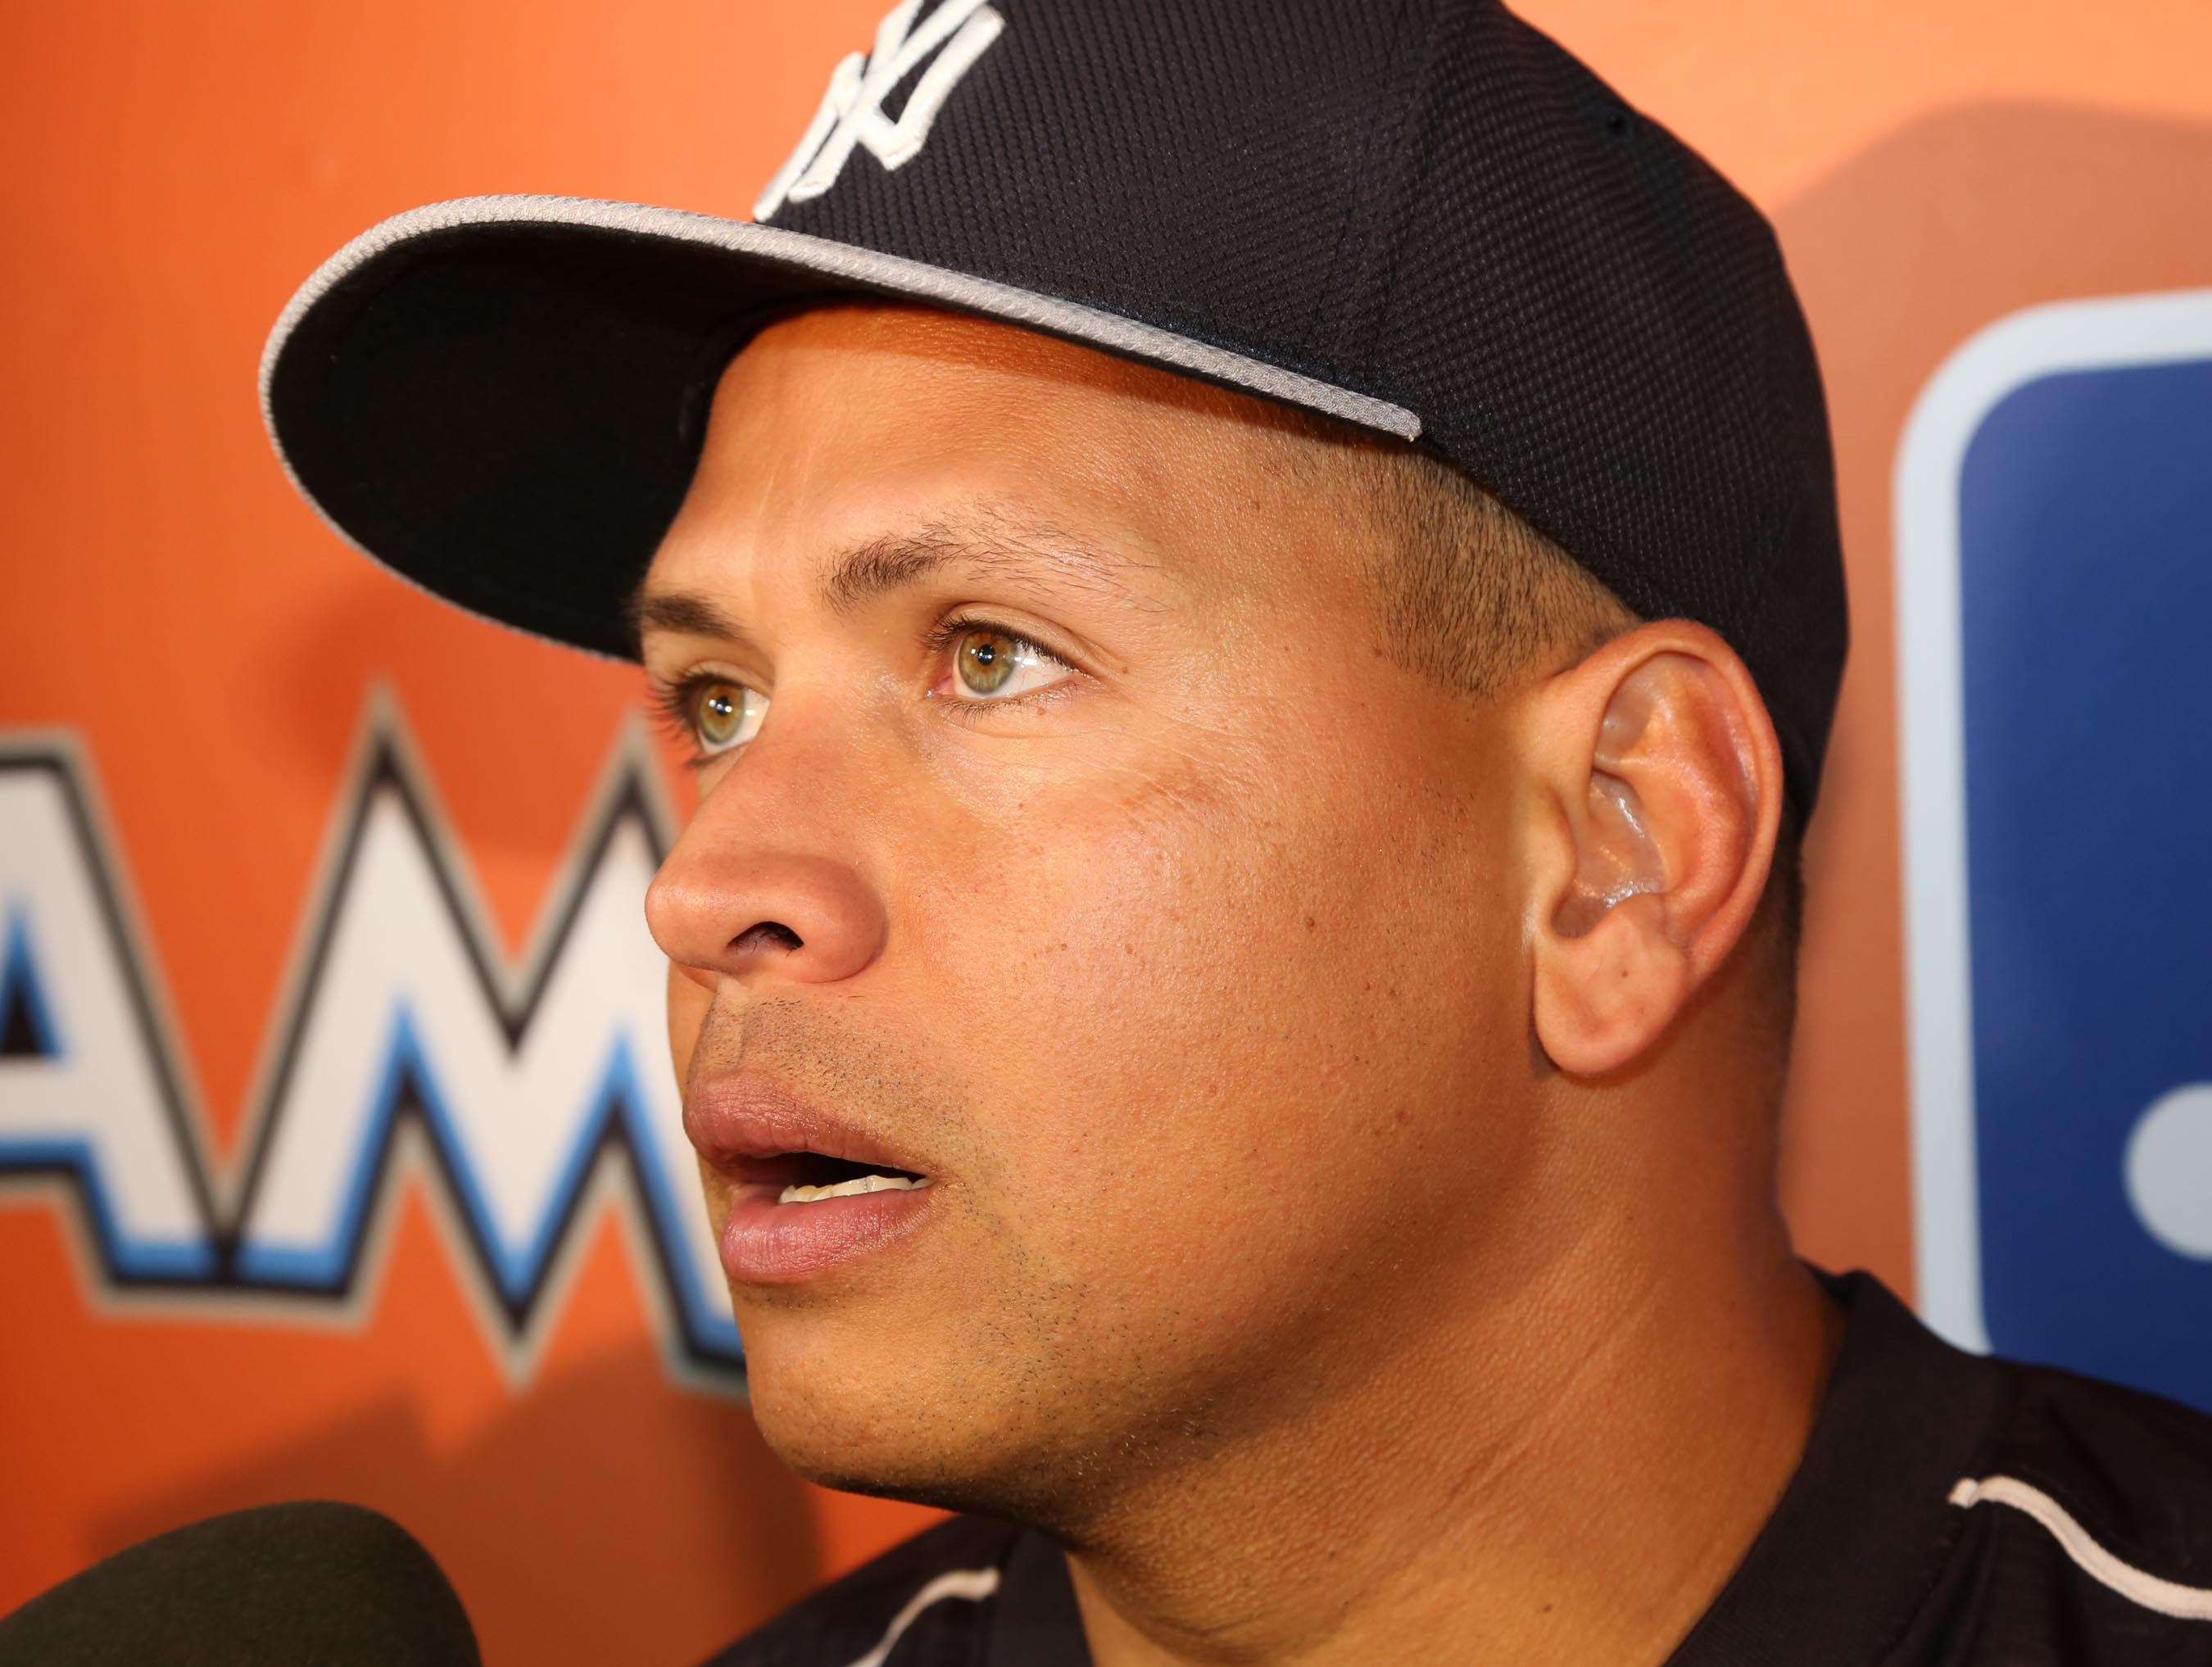 New York Yankees' Alex Rodriguez talks to reporters before a baseball game against the Miami Marlins on.Monday, June 15, 2015, in Miami. (Hector Gabino/El Nuevo Herald via AP)